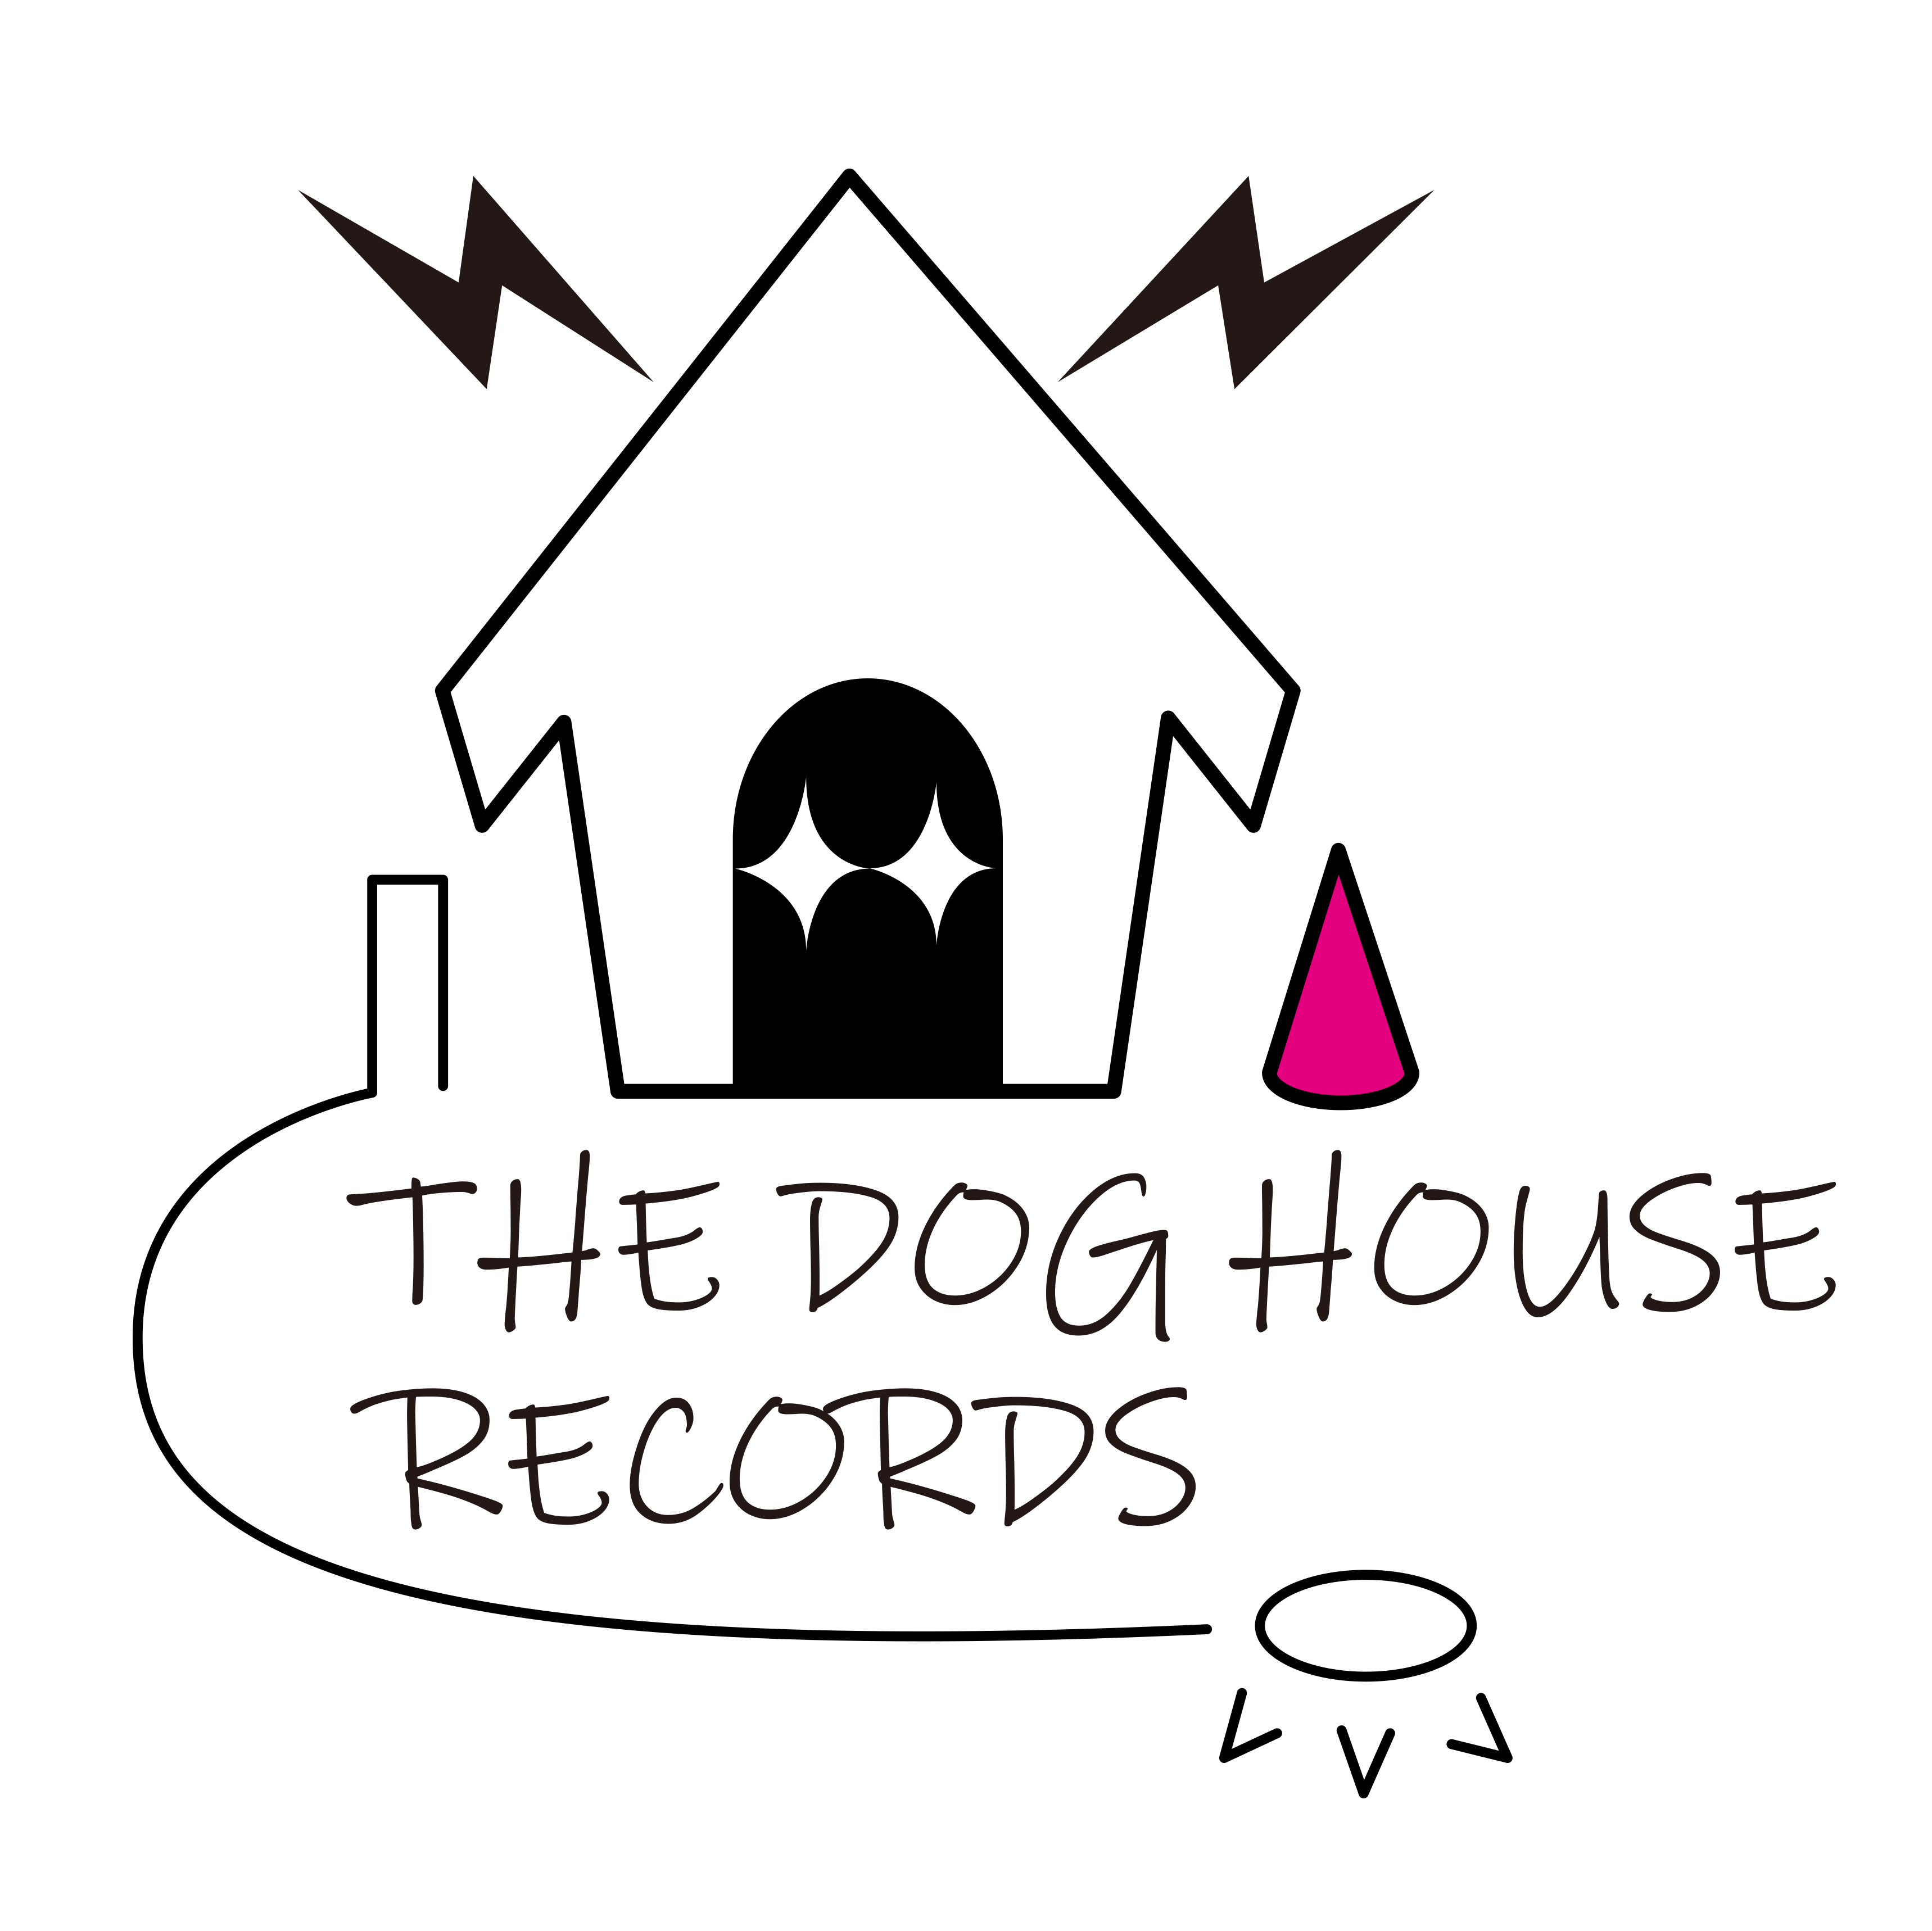 THE DOG HOUSE RECORDS